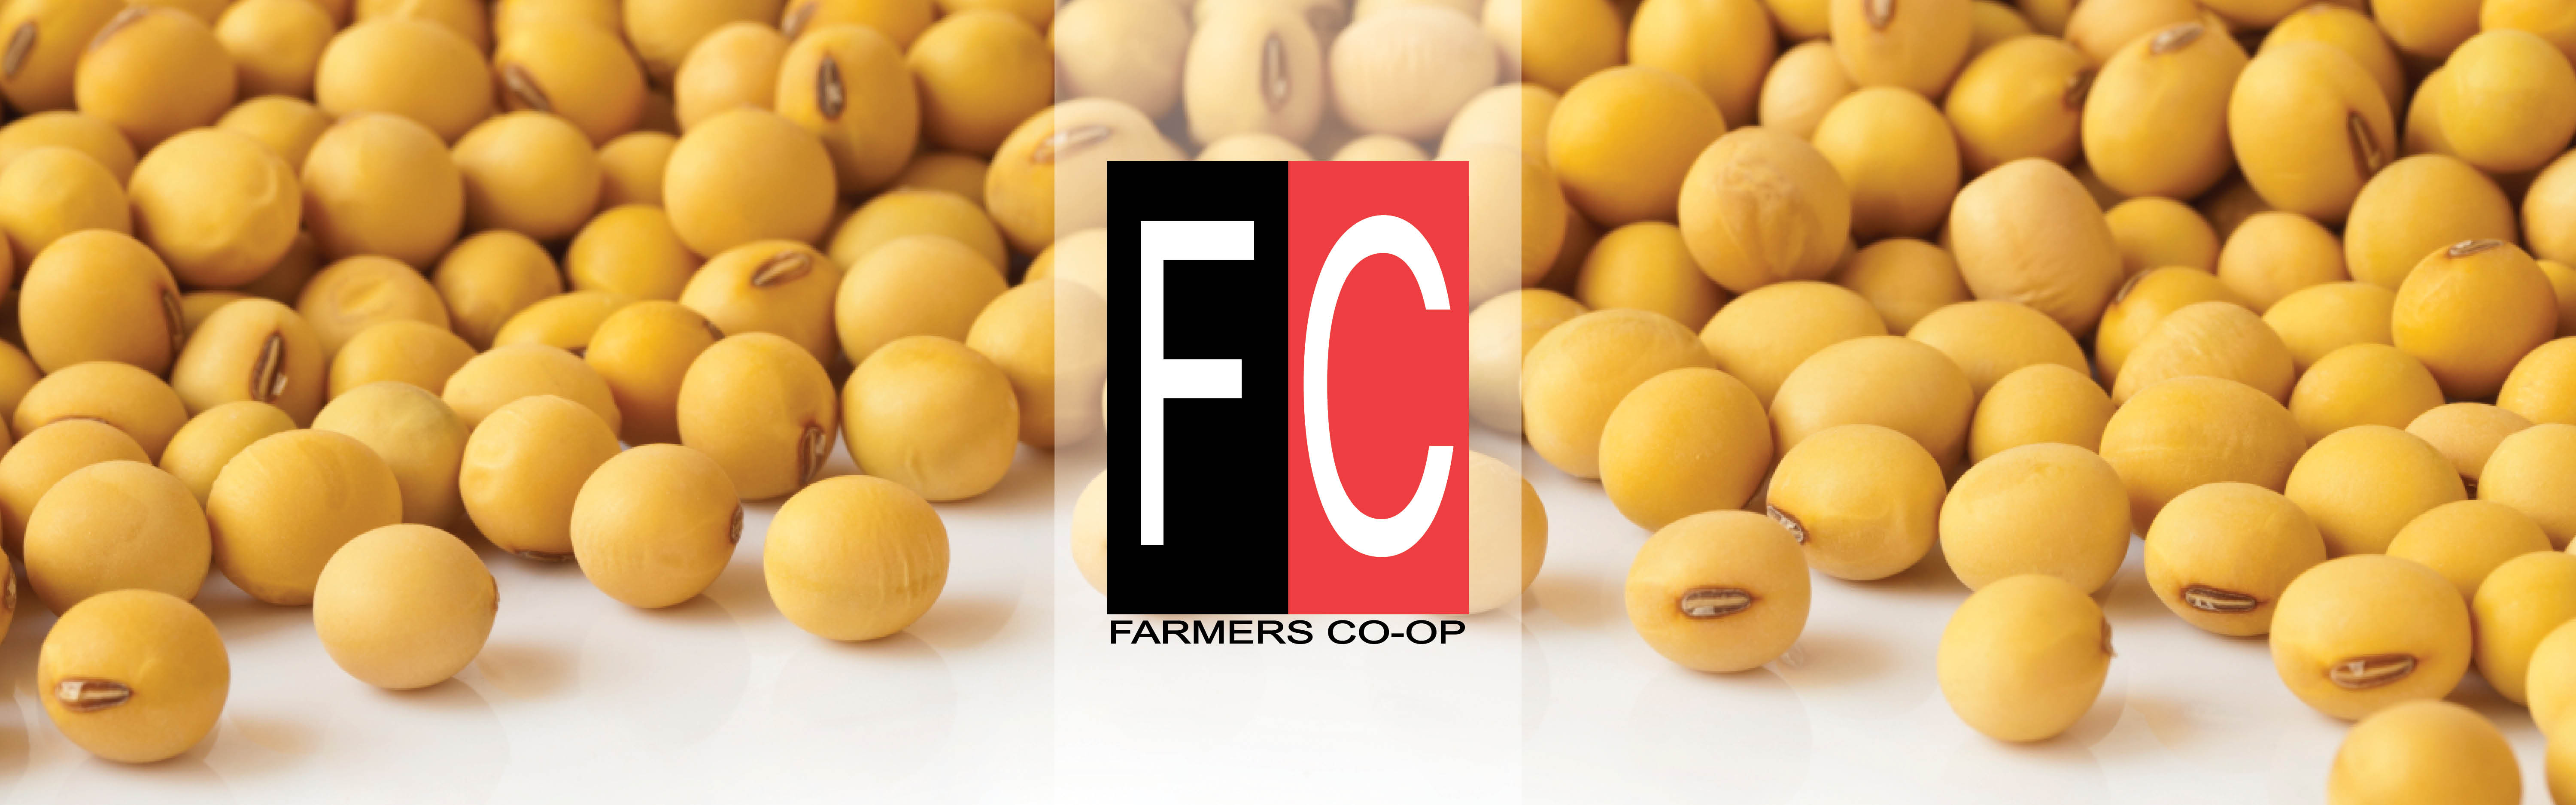 Central Ohio Farmers Co-op - Homepage